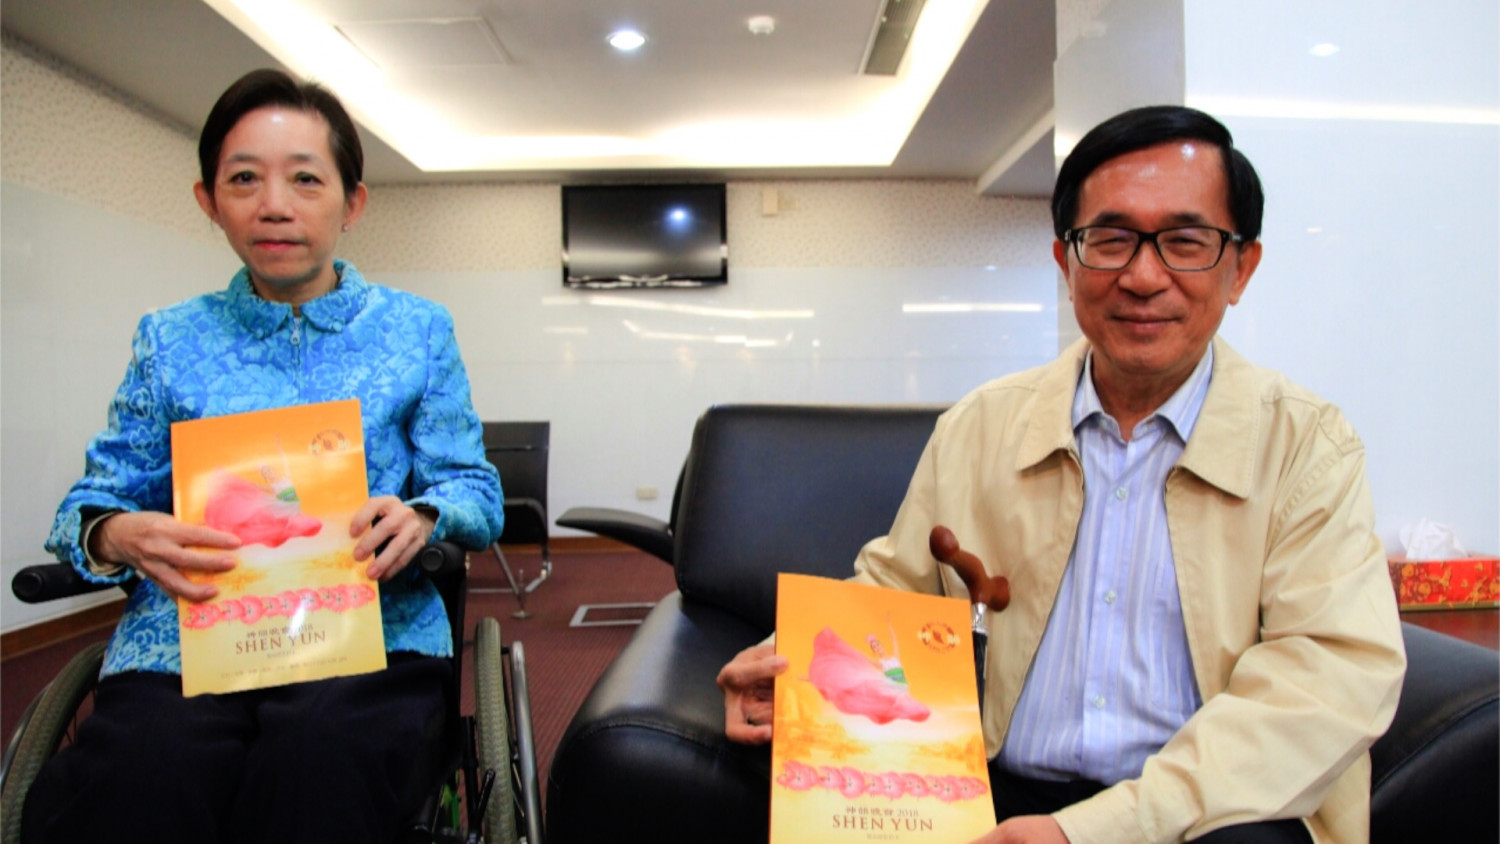 Former Taiwanese First Lady Enjoys the Human Goodness at Shen Yun